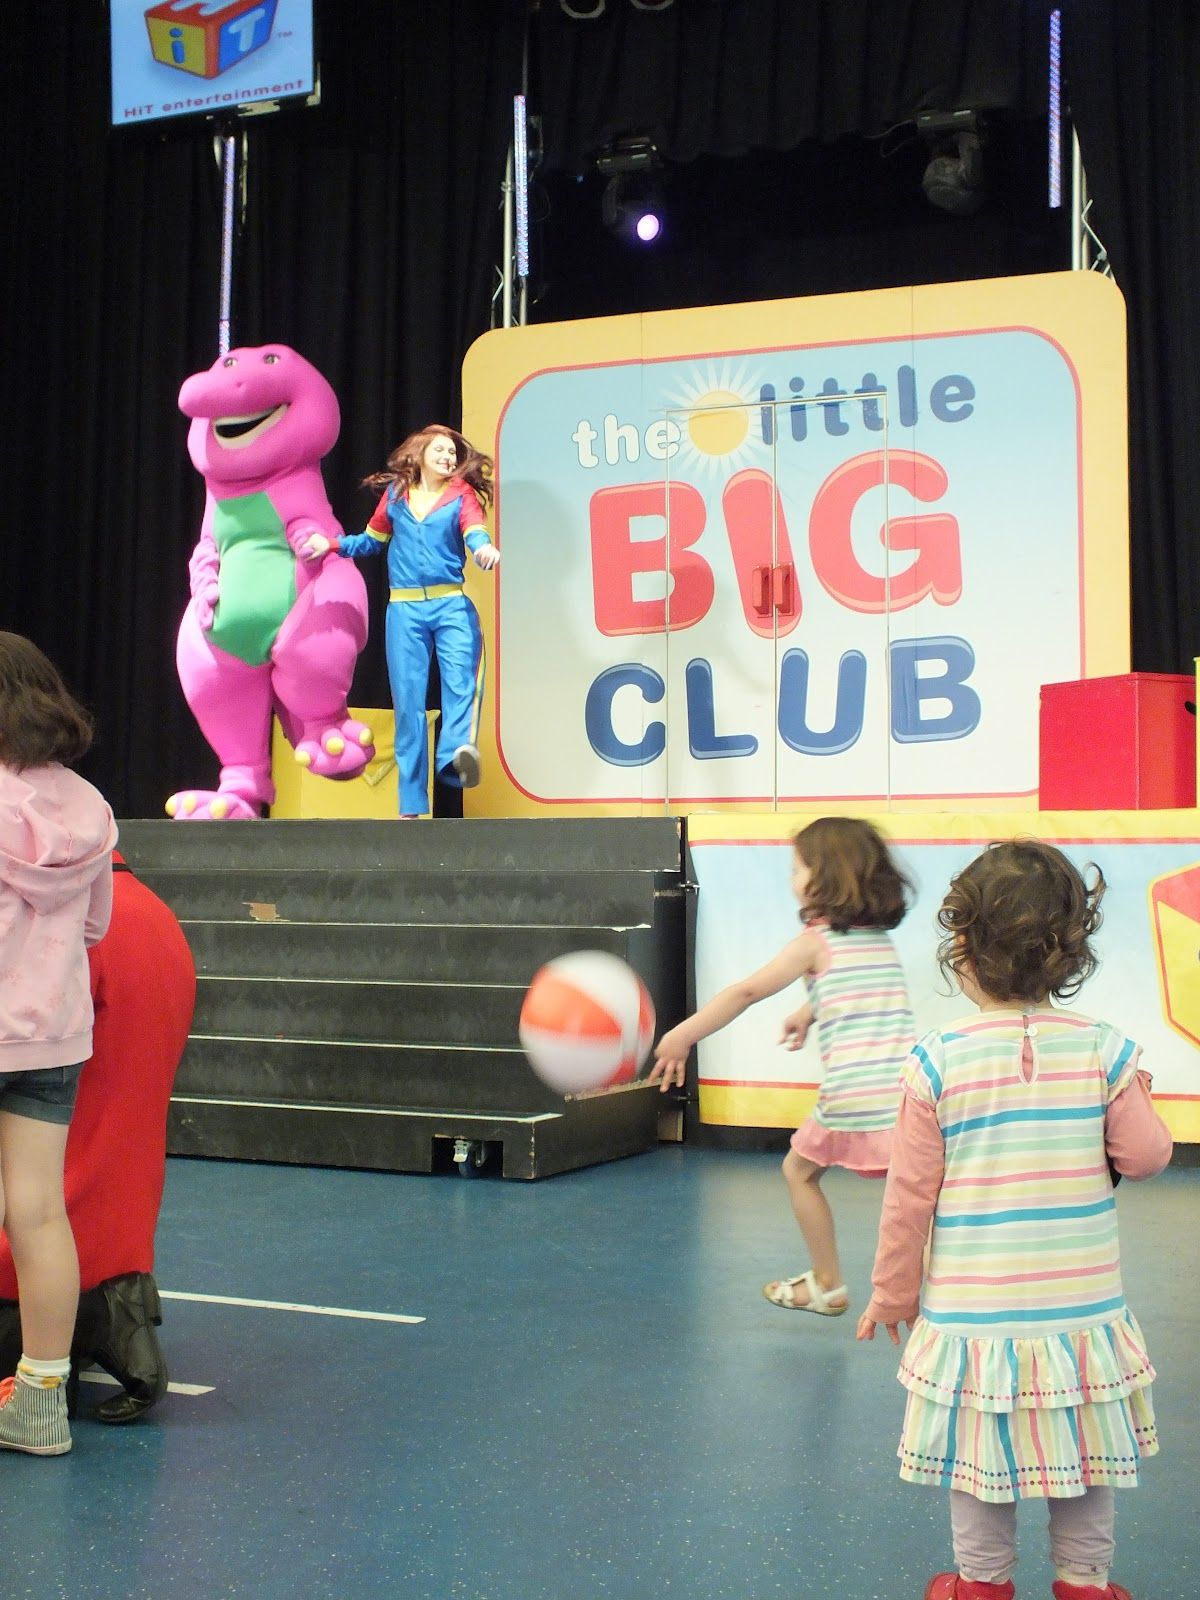 Mummy muddle butlins skegness our weekend in pictures - The little club ...